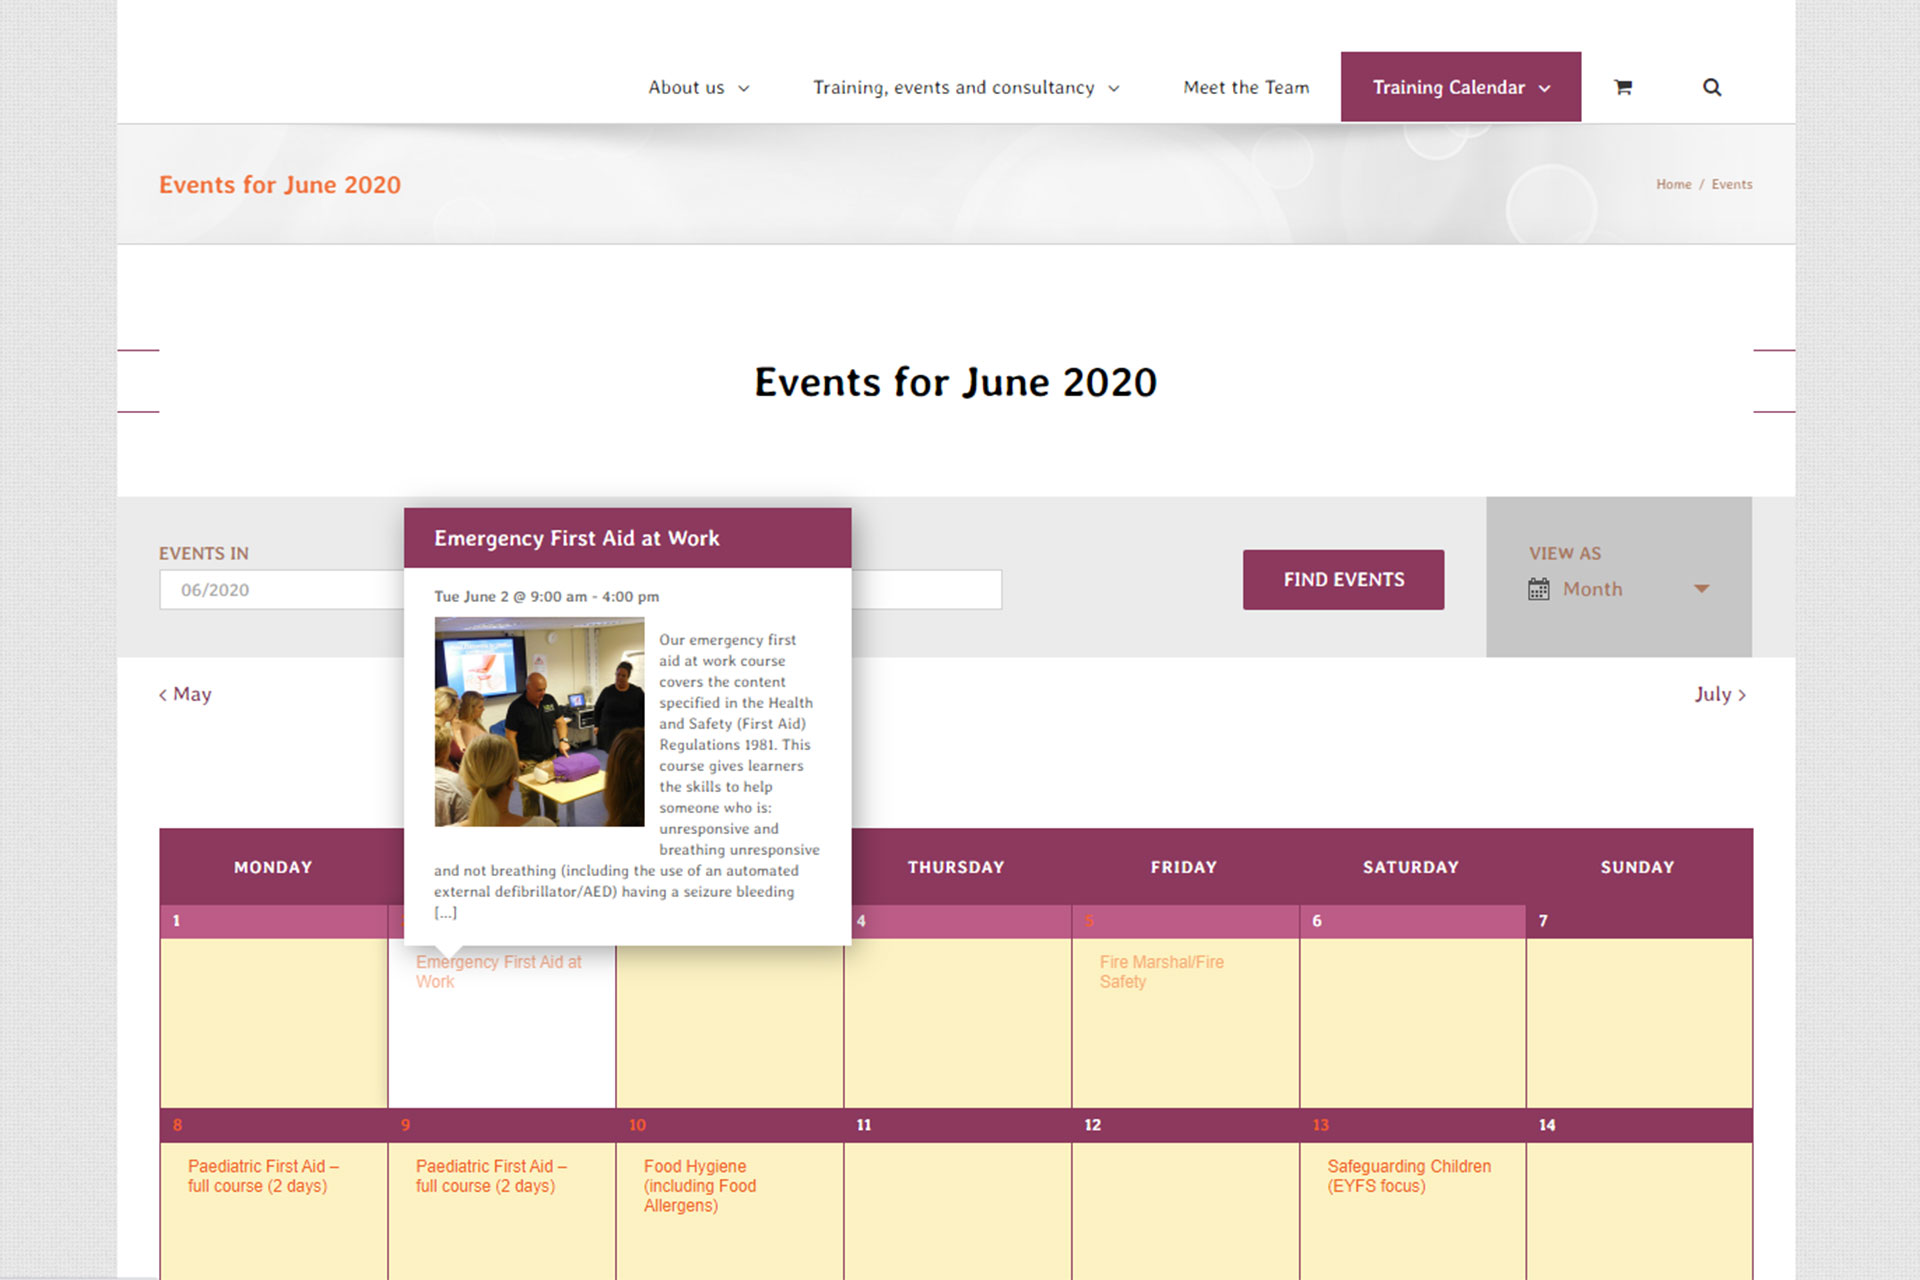 Early Years Hub training course calendar screenshot for June 2020